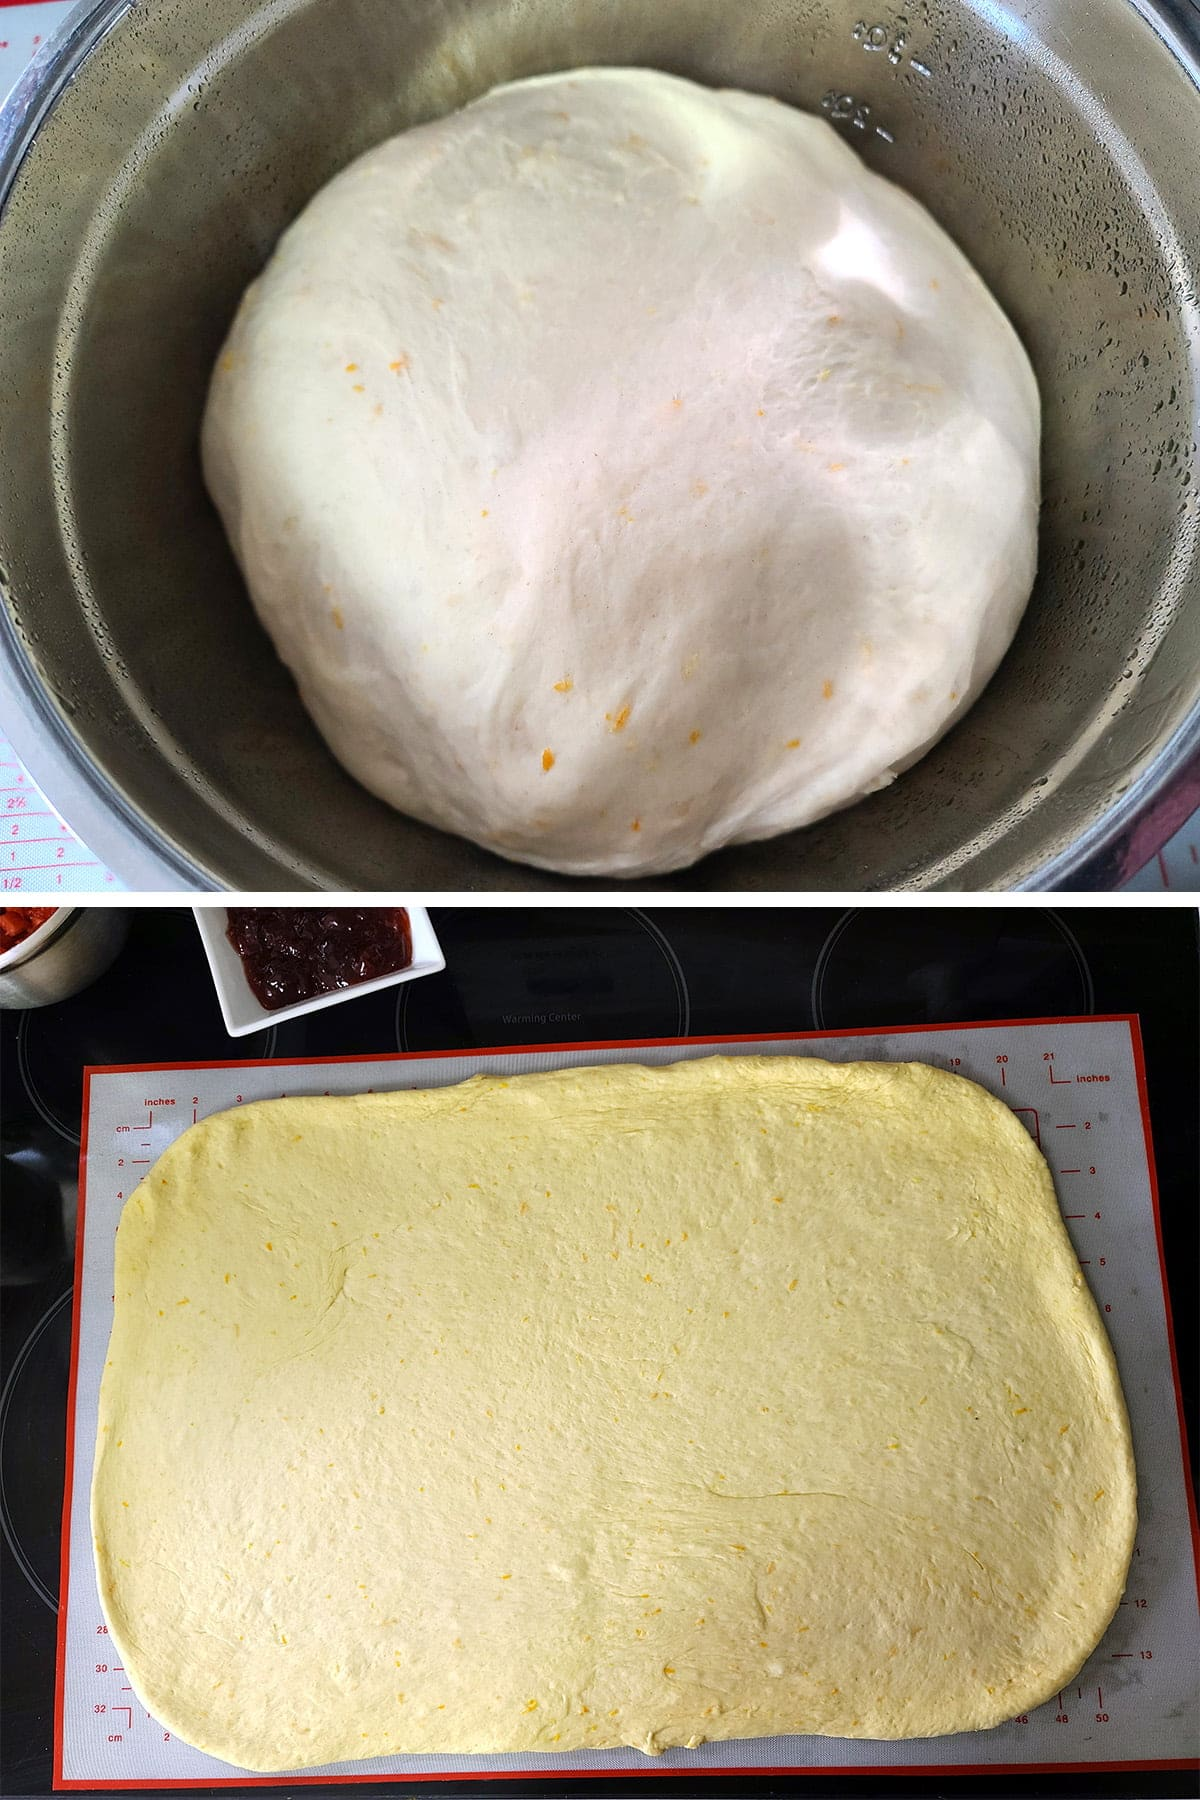 A two part compilation image showing a large ball of orange-flecked dough, and that dough rolled out into a large rectangle.